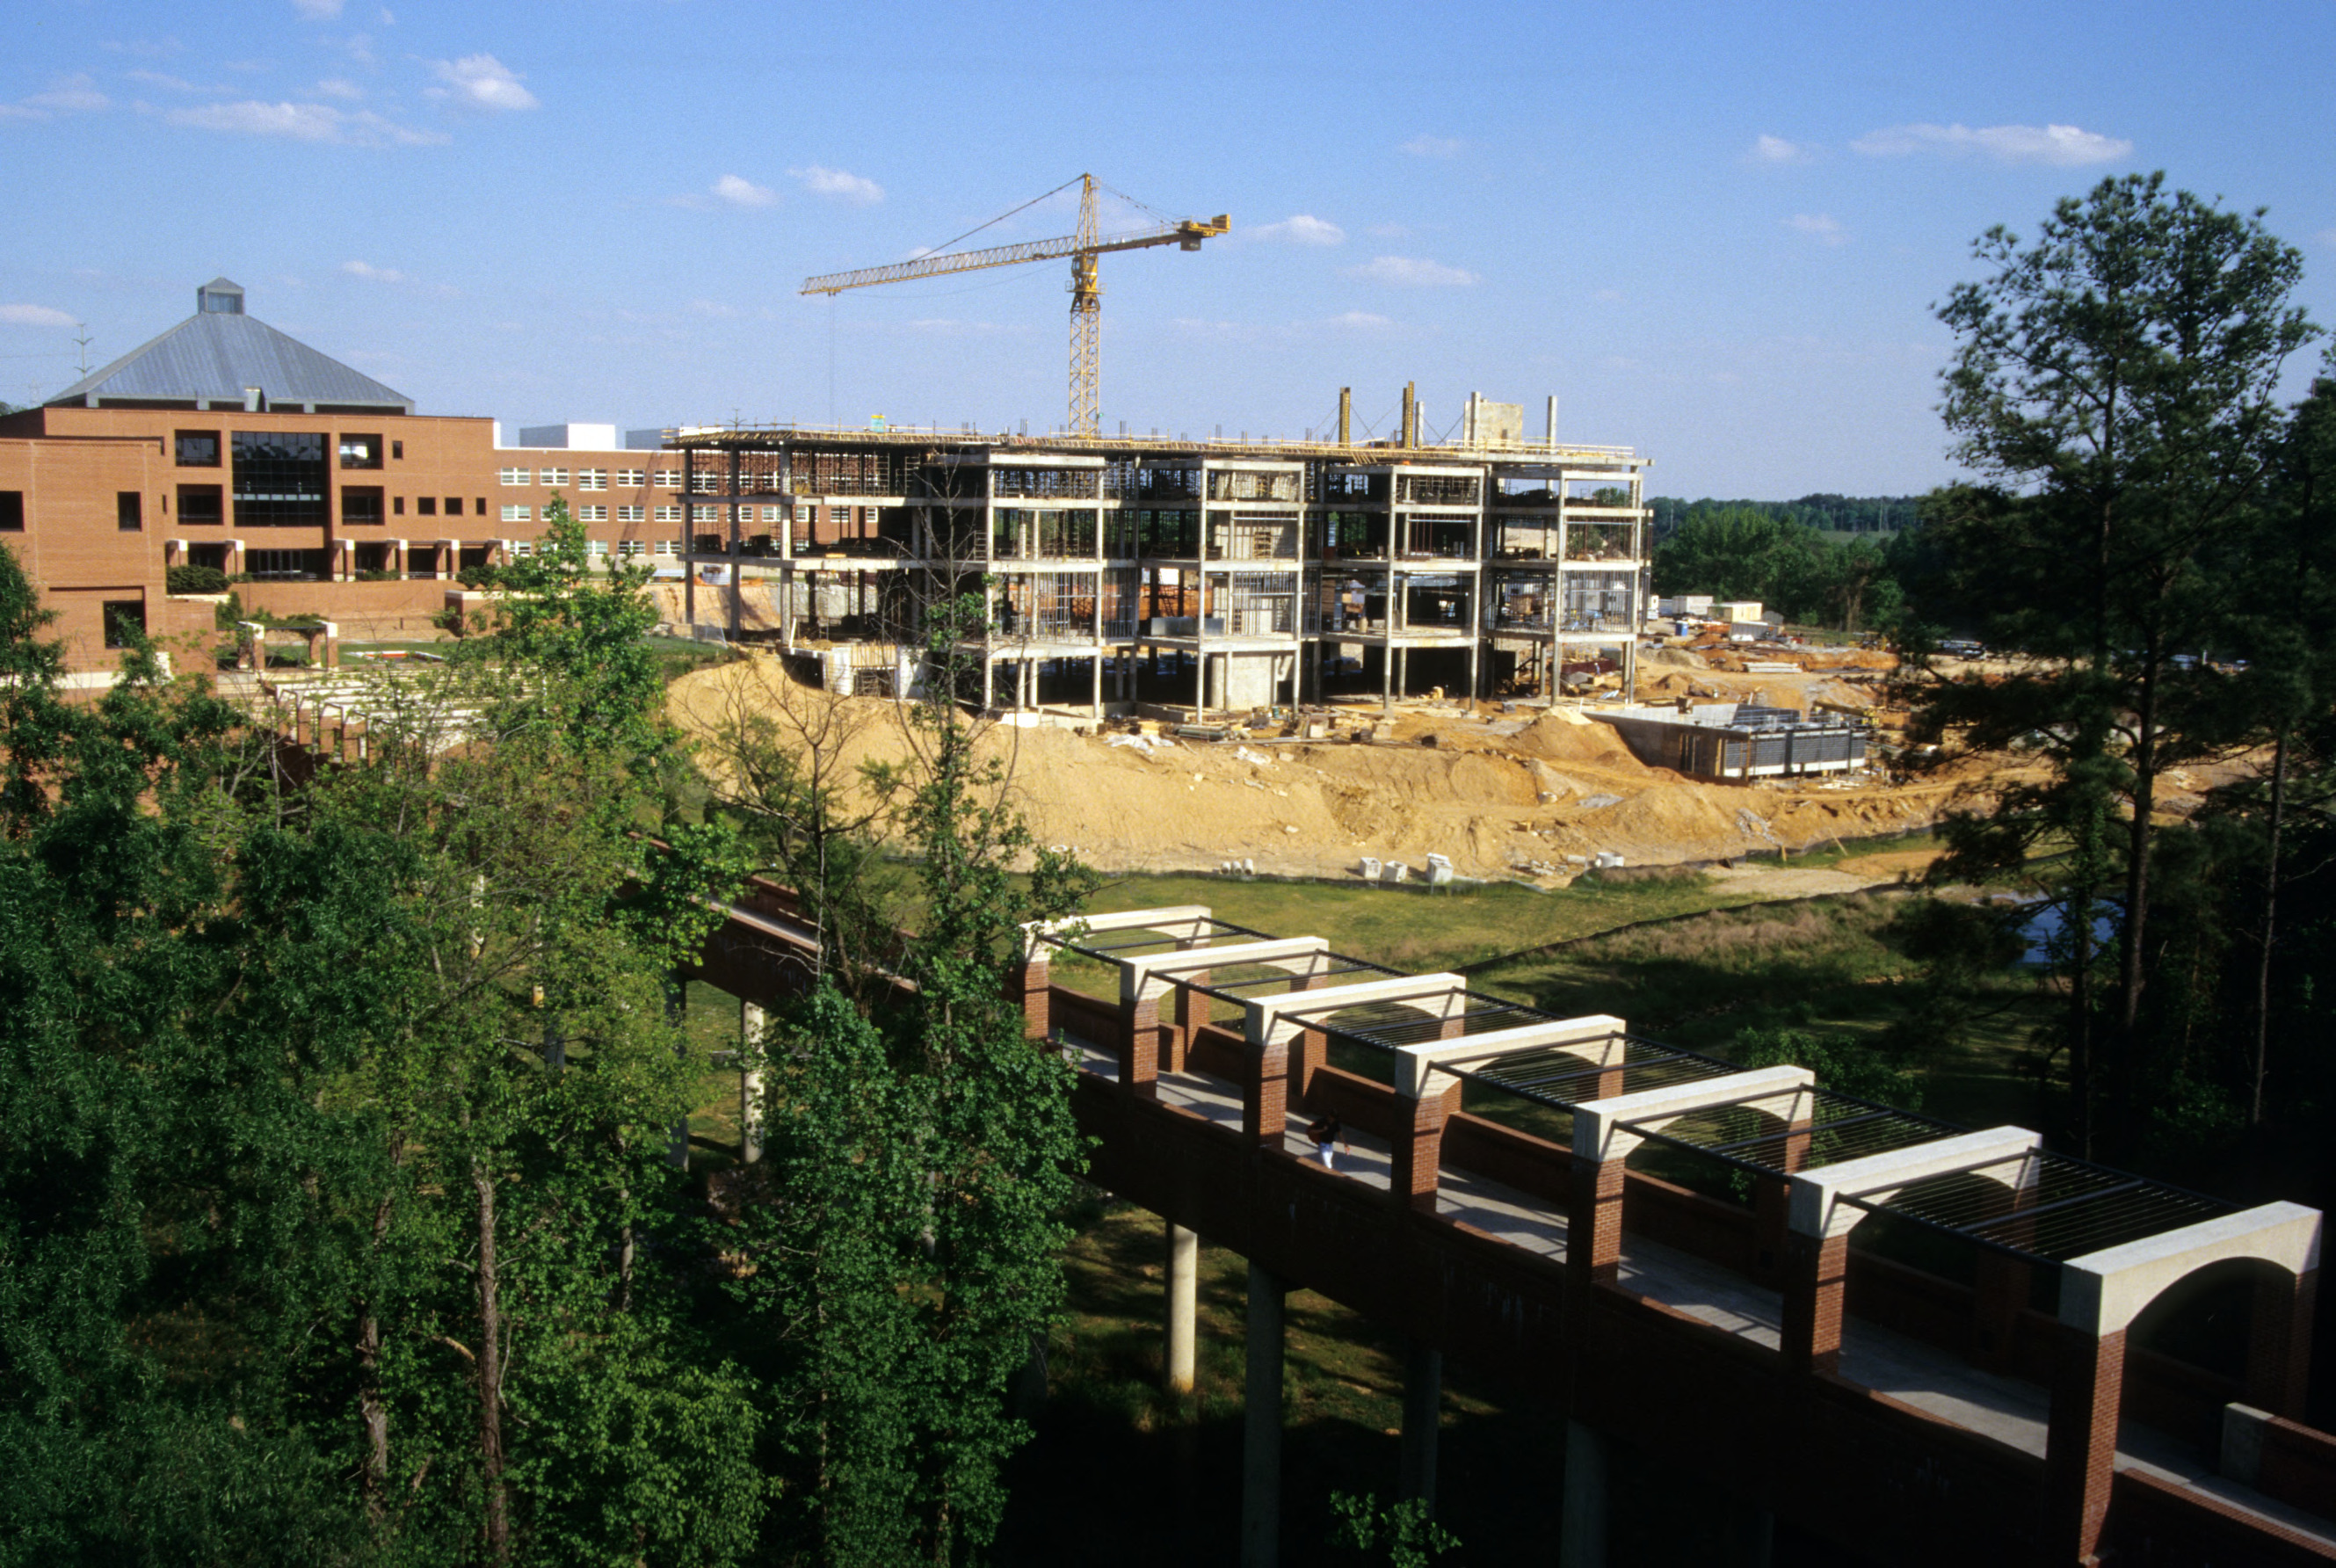 Engineering Graduate Research Center construction, Centennial Campus, North Carolina State